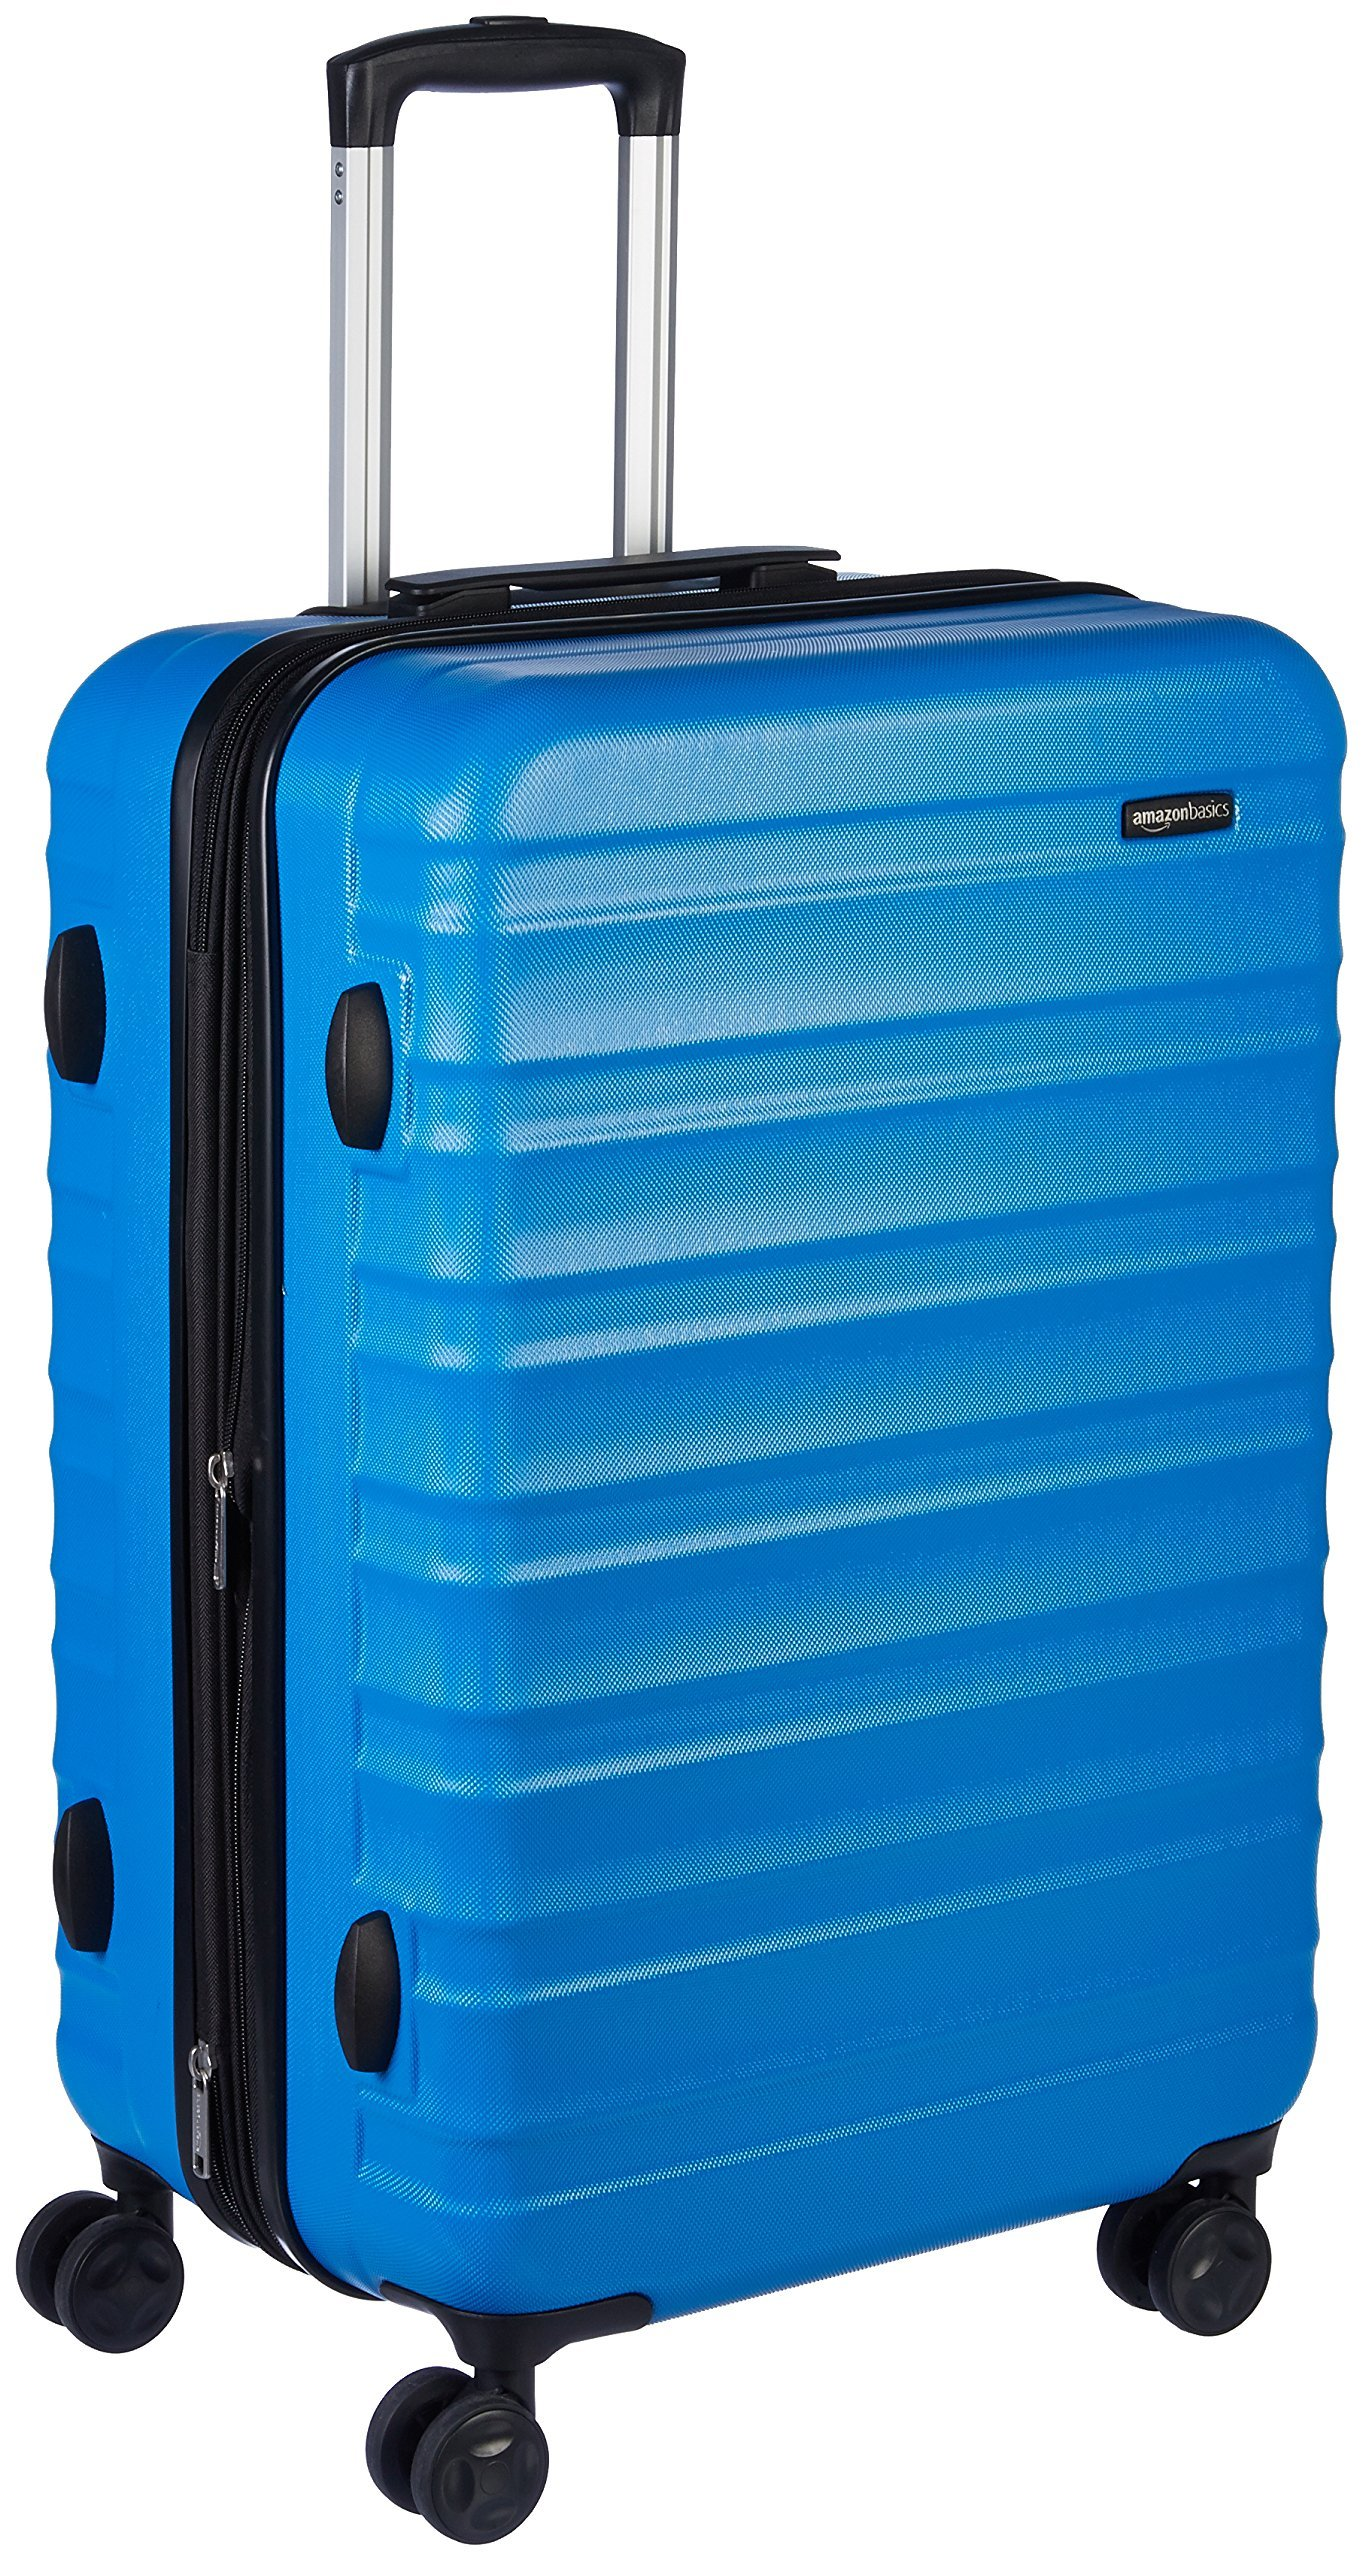 AmazonBasics Hardside Spinner Luggage - 24-Inch, Light Blue